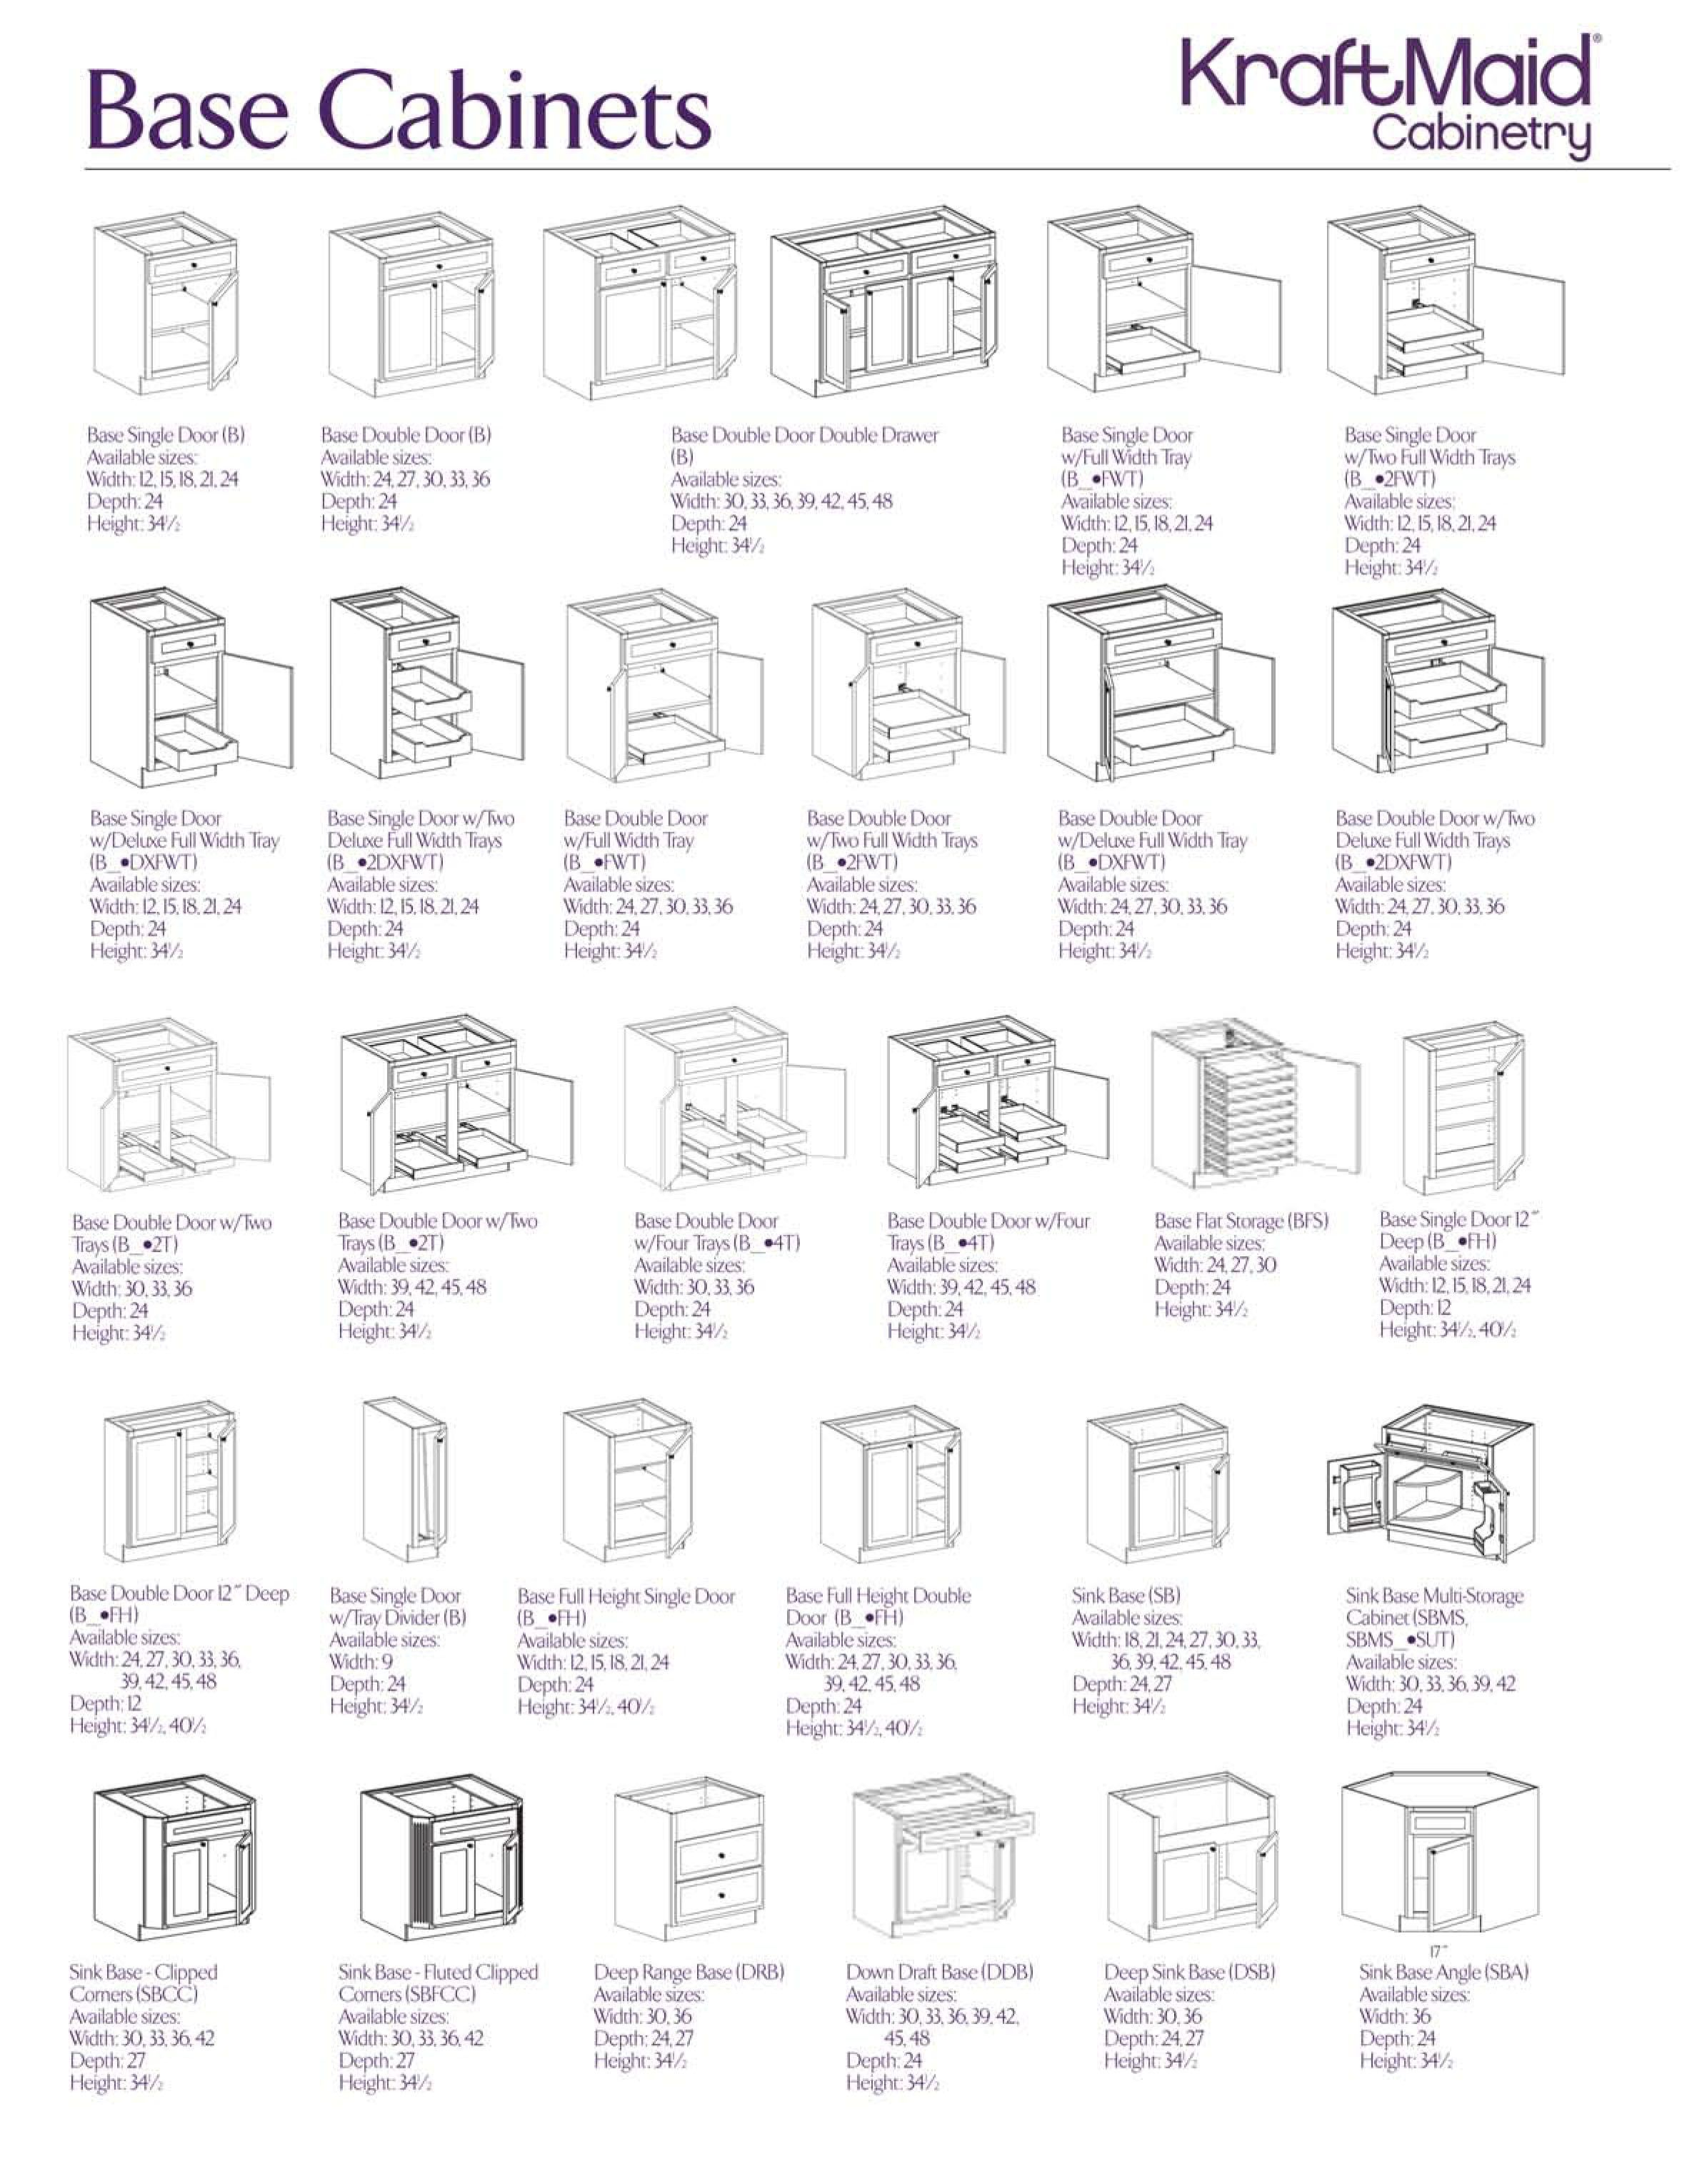 Kraftmaid Kitchen Cabinet Sizes 2021 Kraftmaid Kitchens Kitchen Cabinet Sizes Kraftmaid Kitchen Cabinets